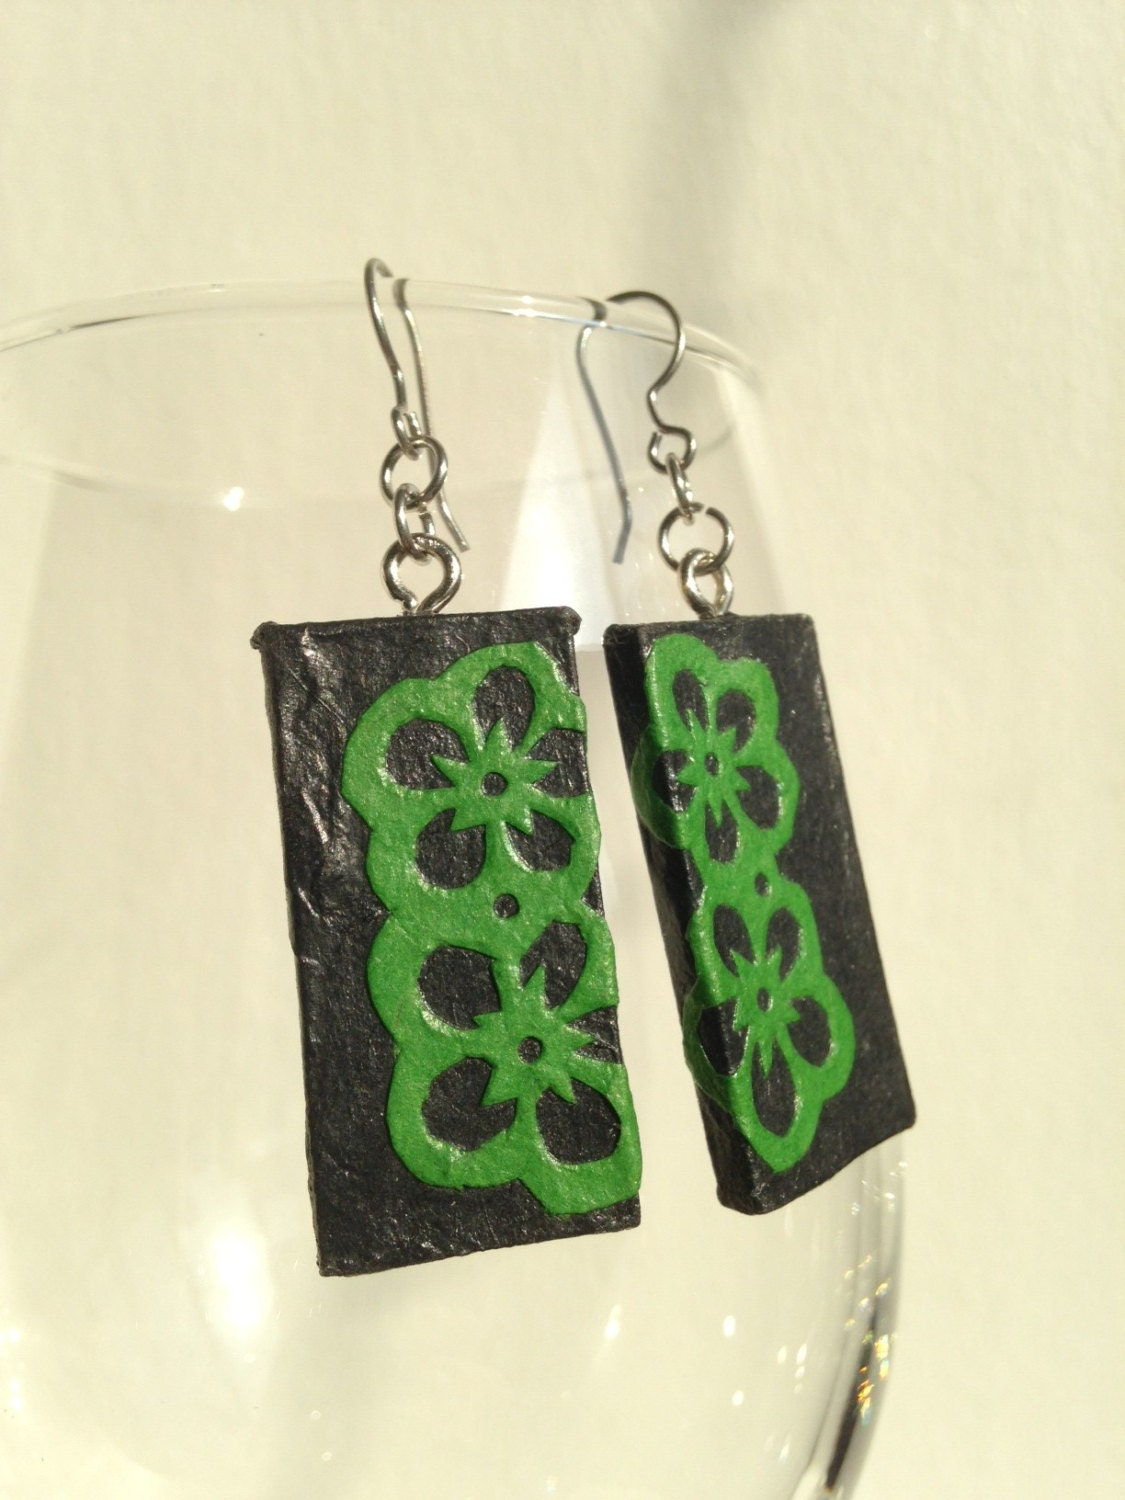 Black Green Handmade Hanji Paper Dangle Earrings Flower Design Hypoallergenic hooks Lightweight Ear rings - HanjiNaty